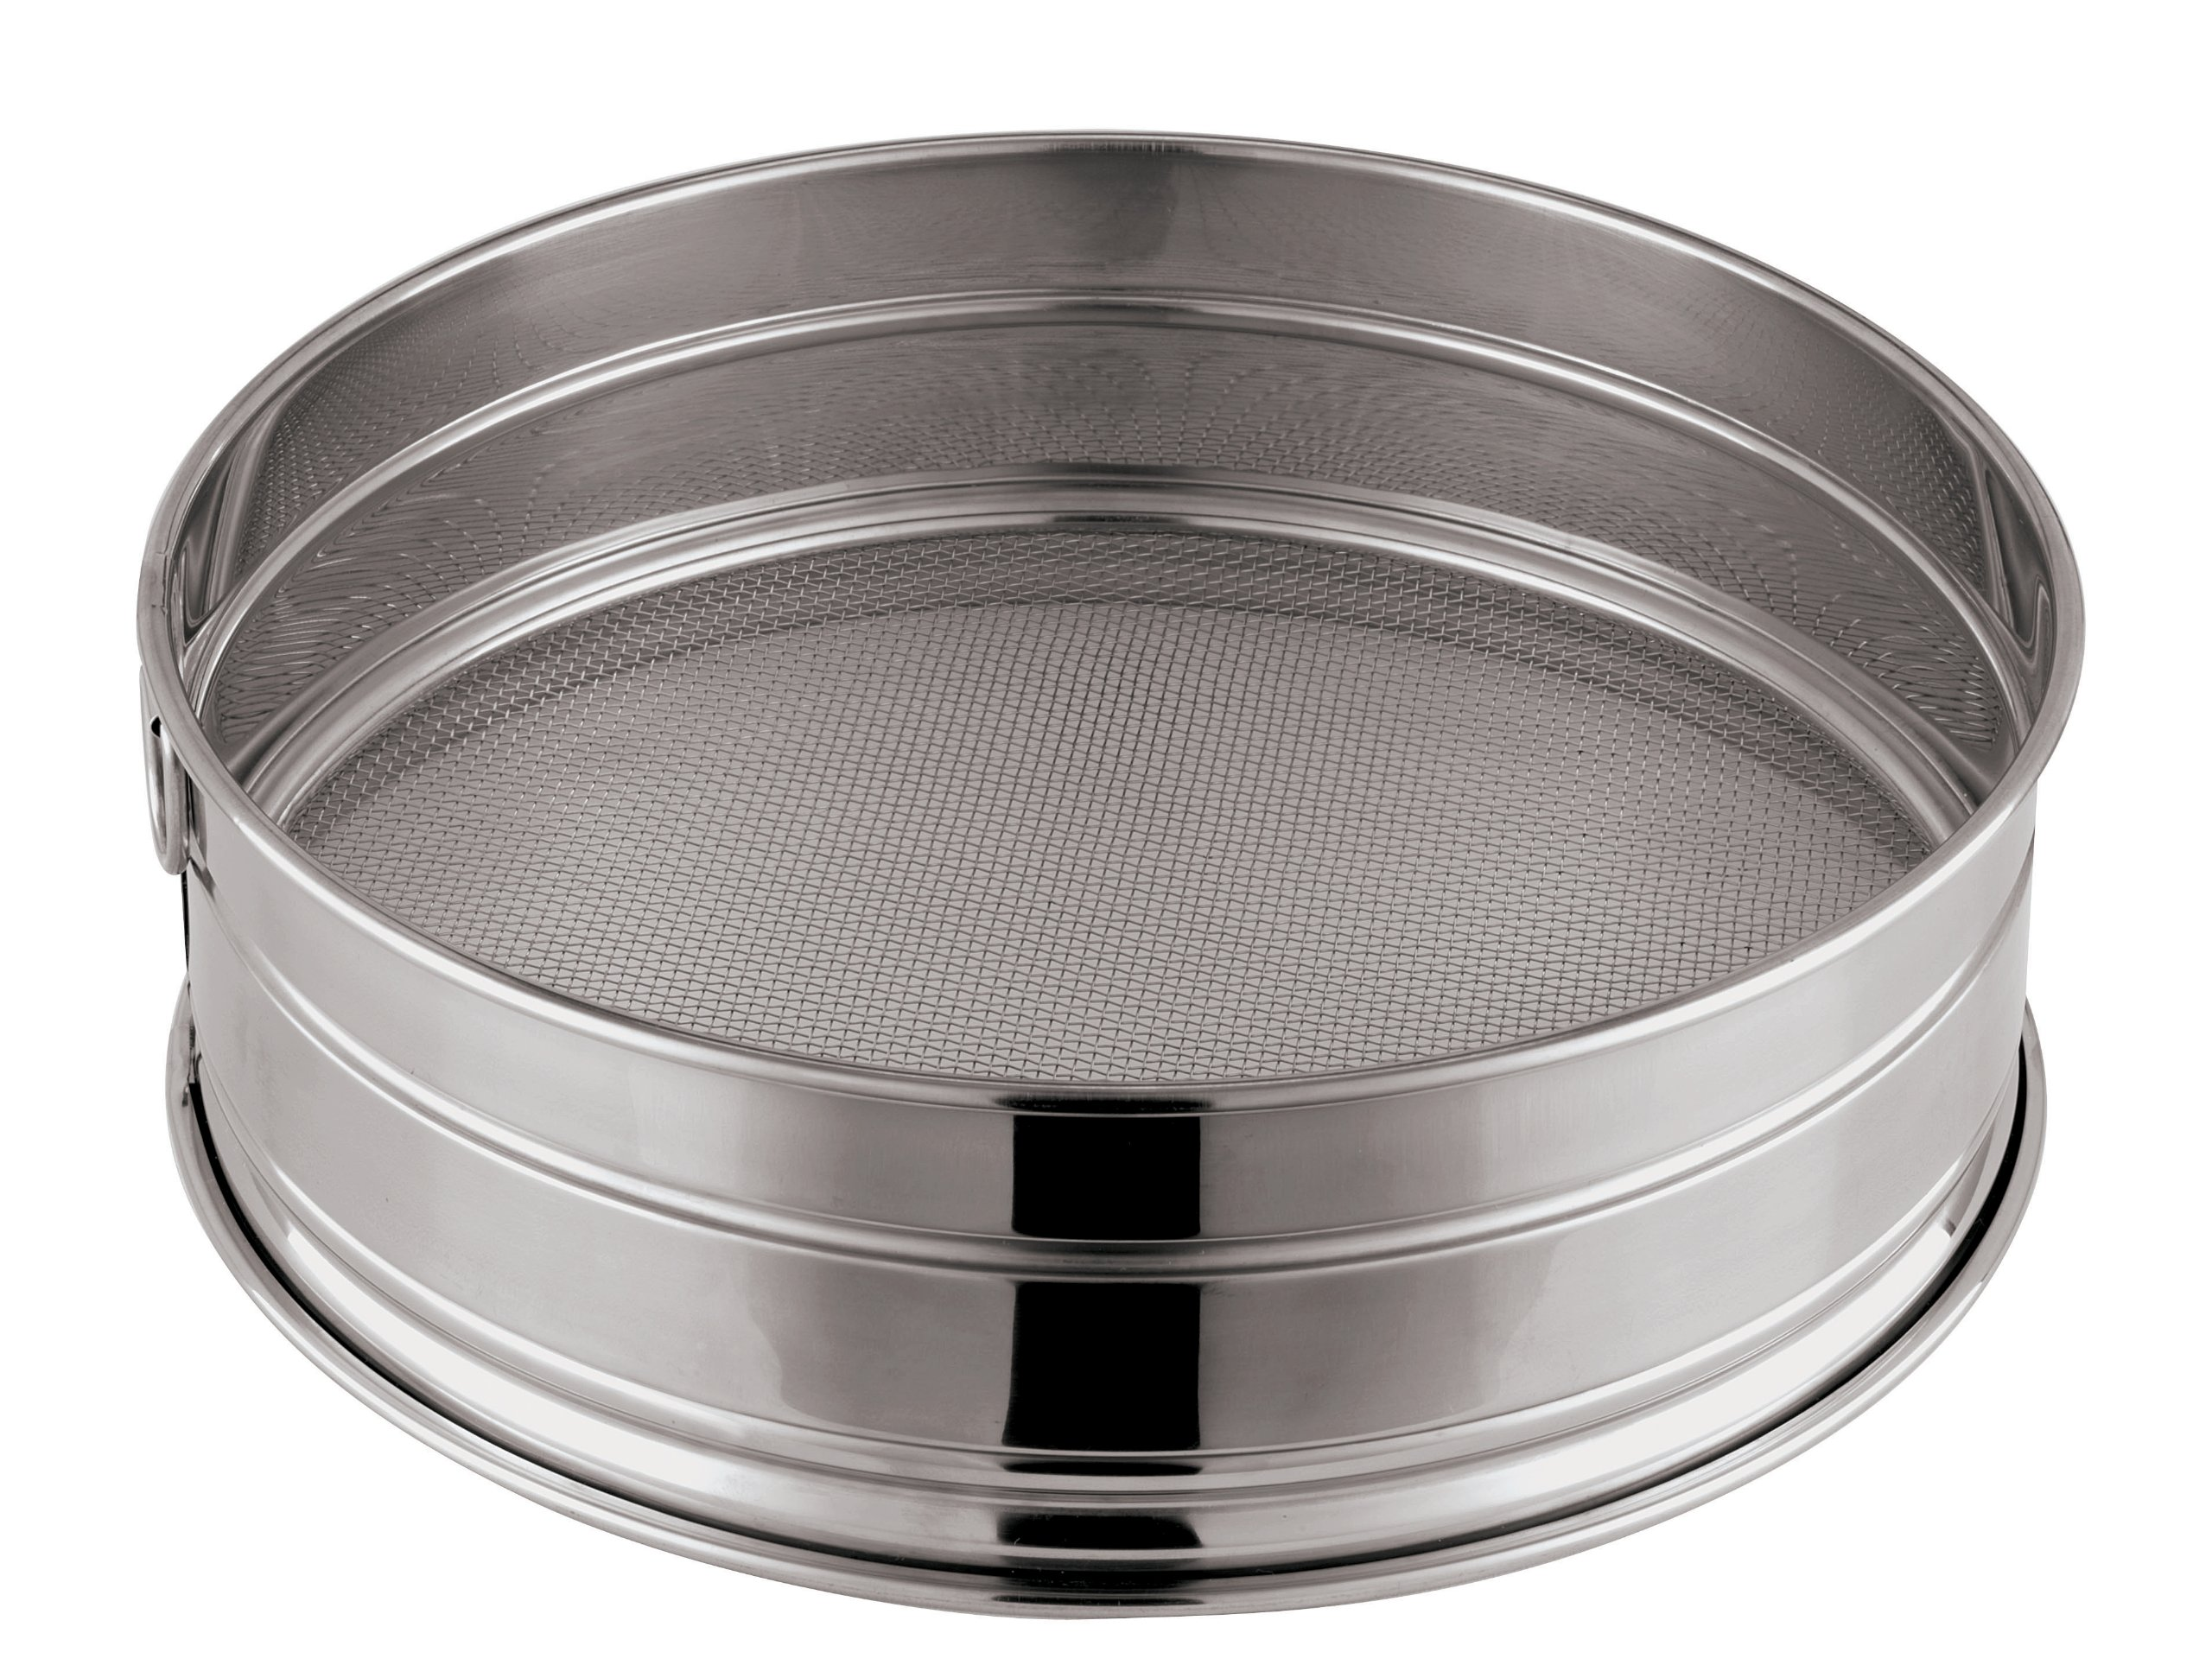 Paderno World Cuisine 11-7/8-Inch Stainless-Steel Medium Mesh Flour Sieve